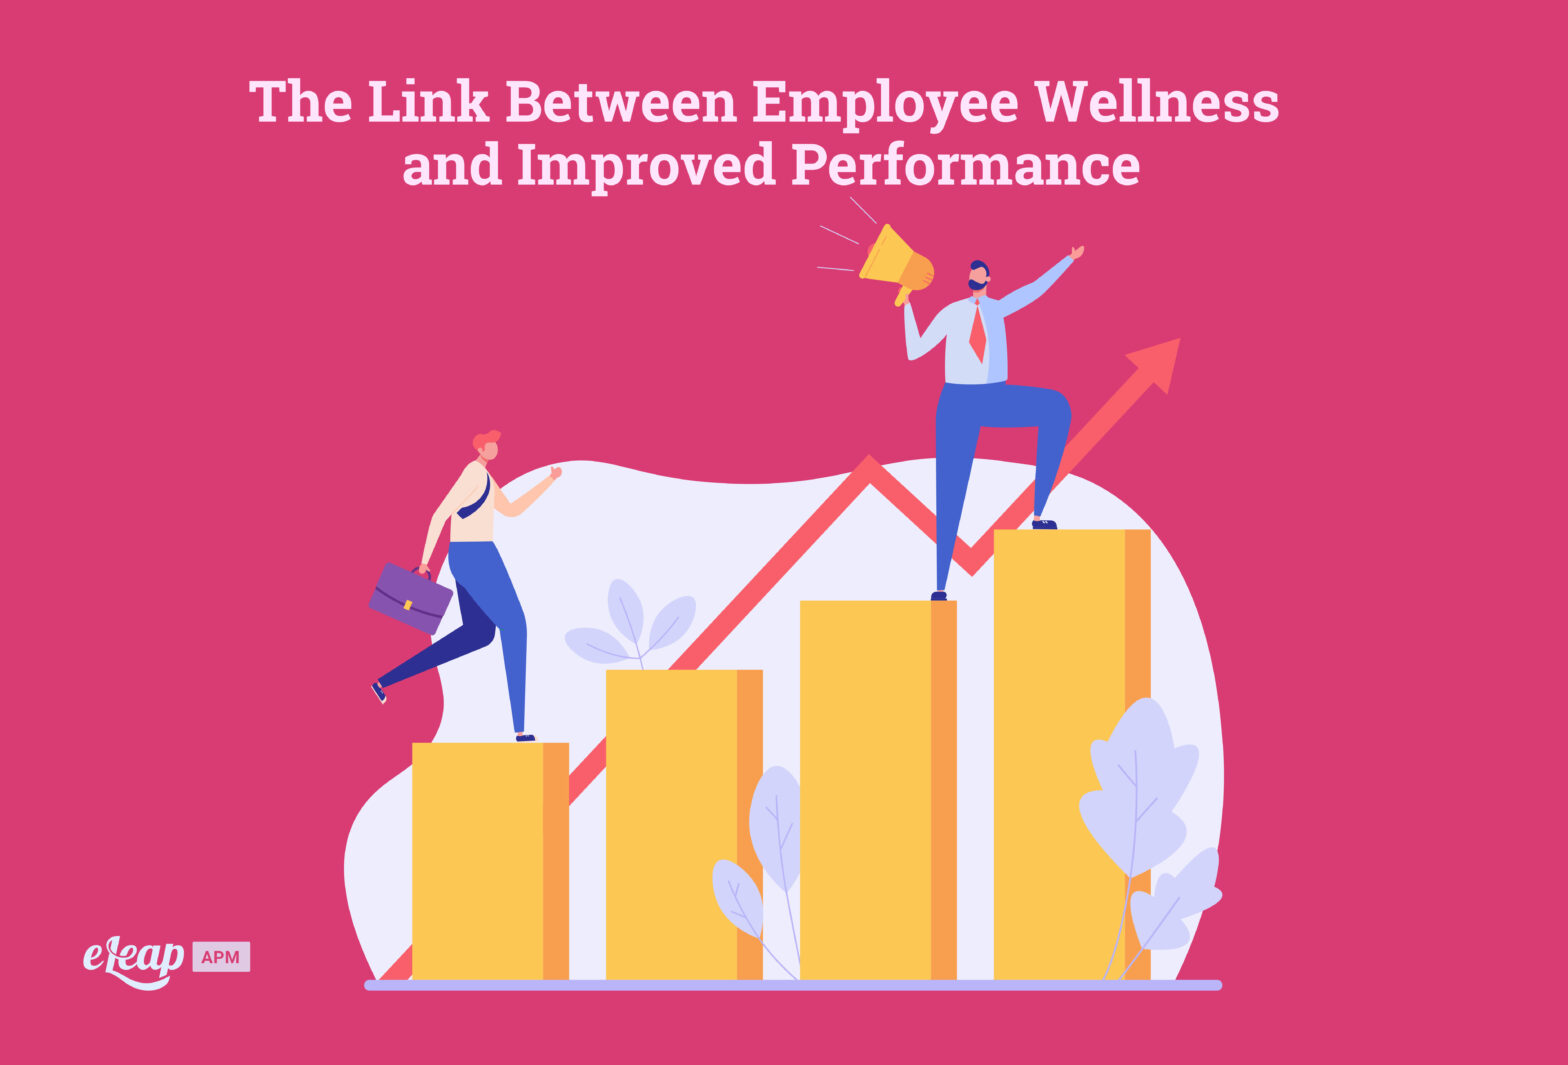 The Link Between Employee Wellness and Improved Performance